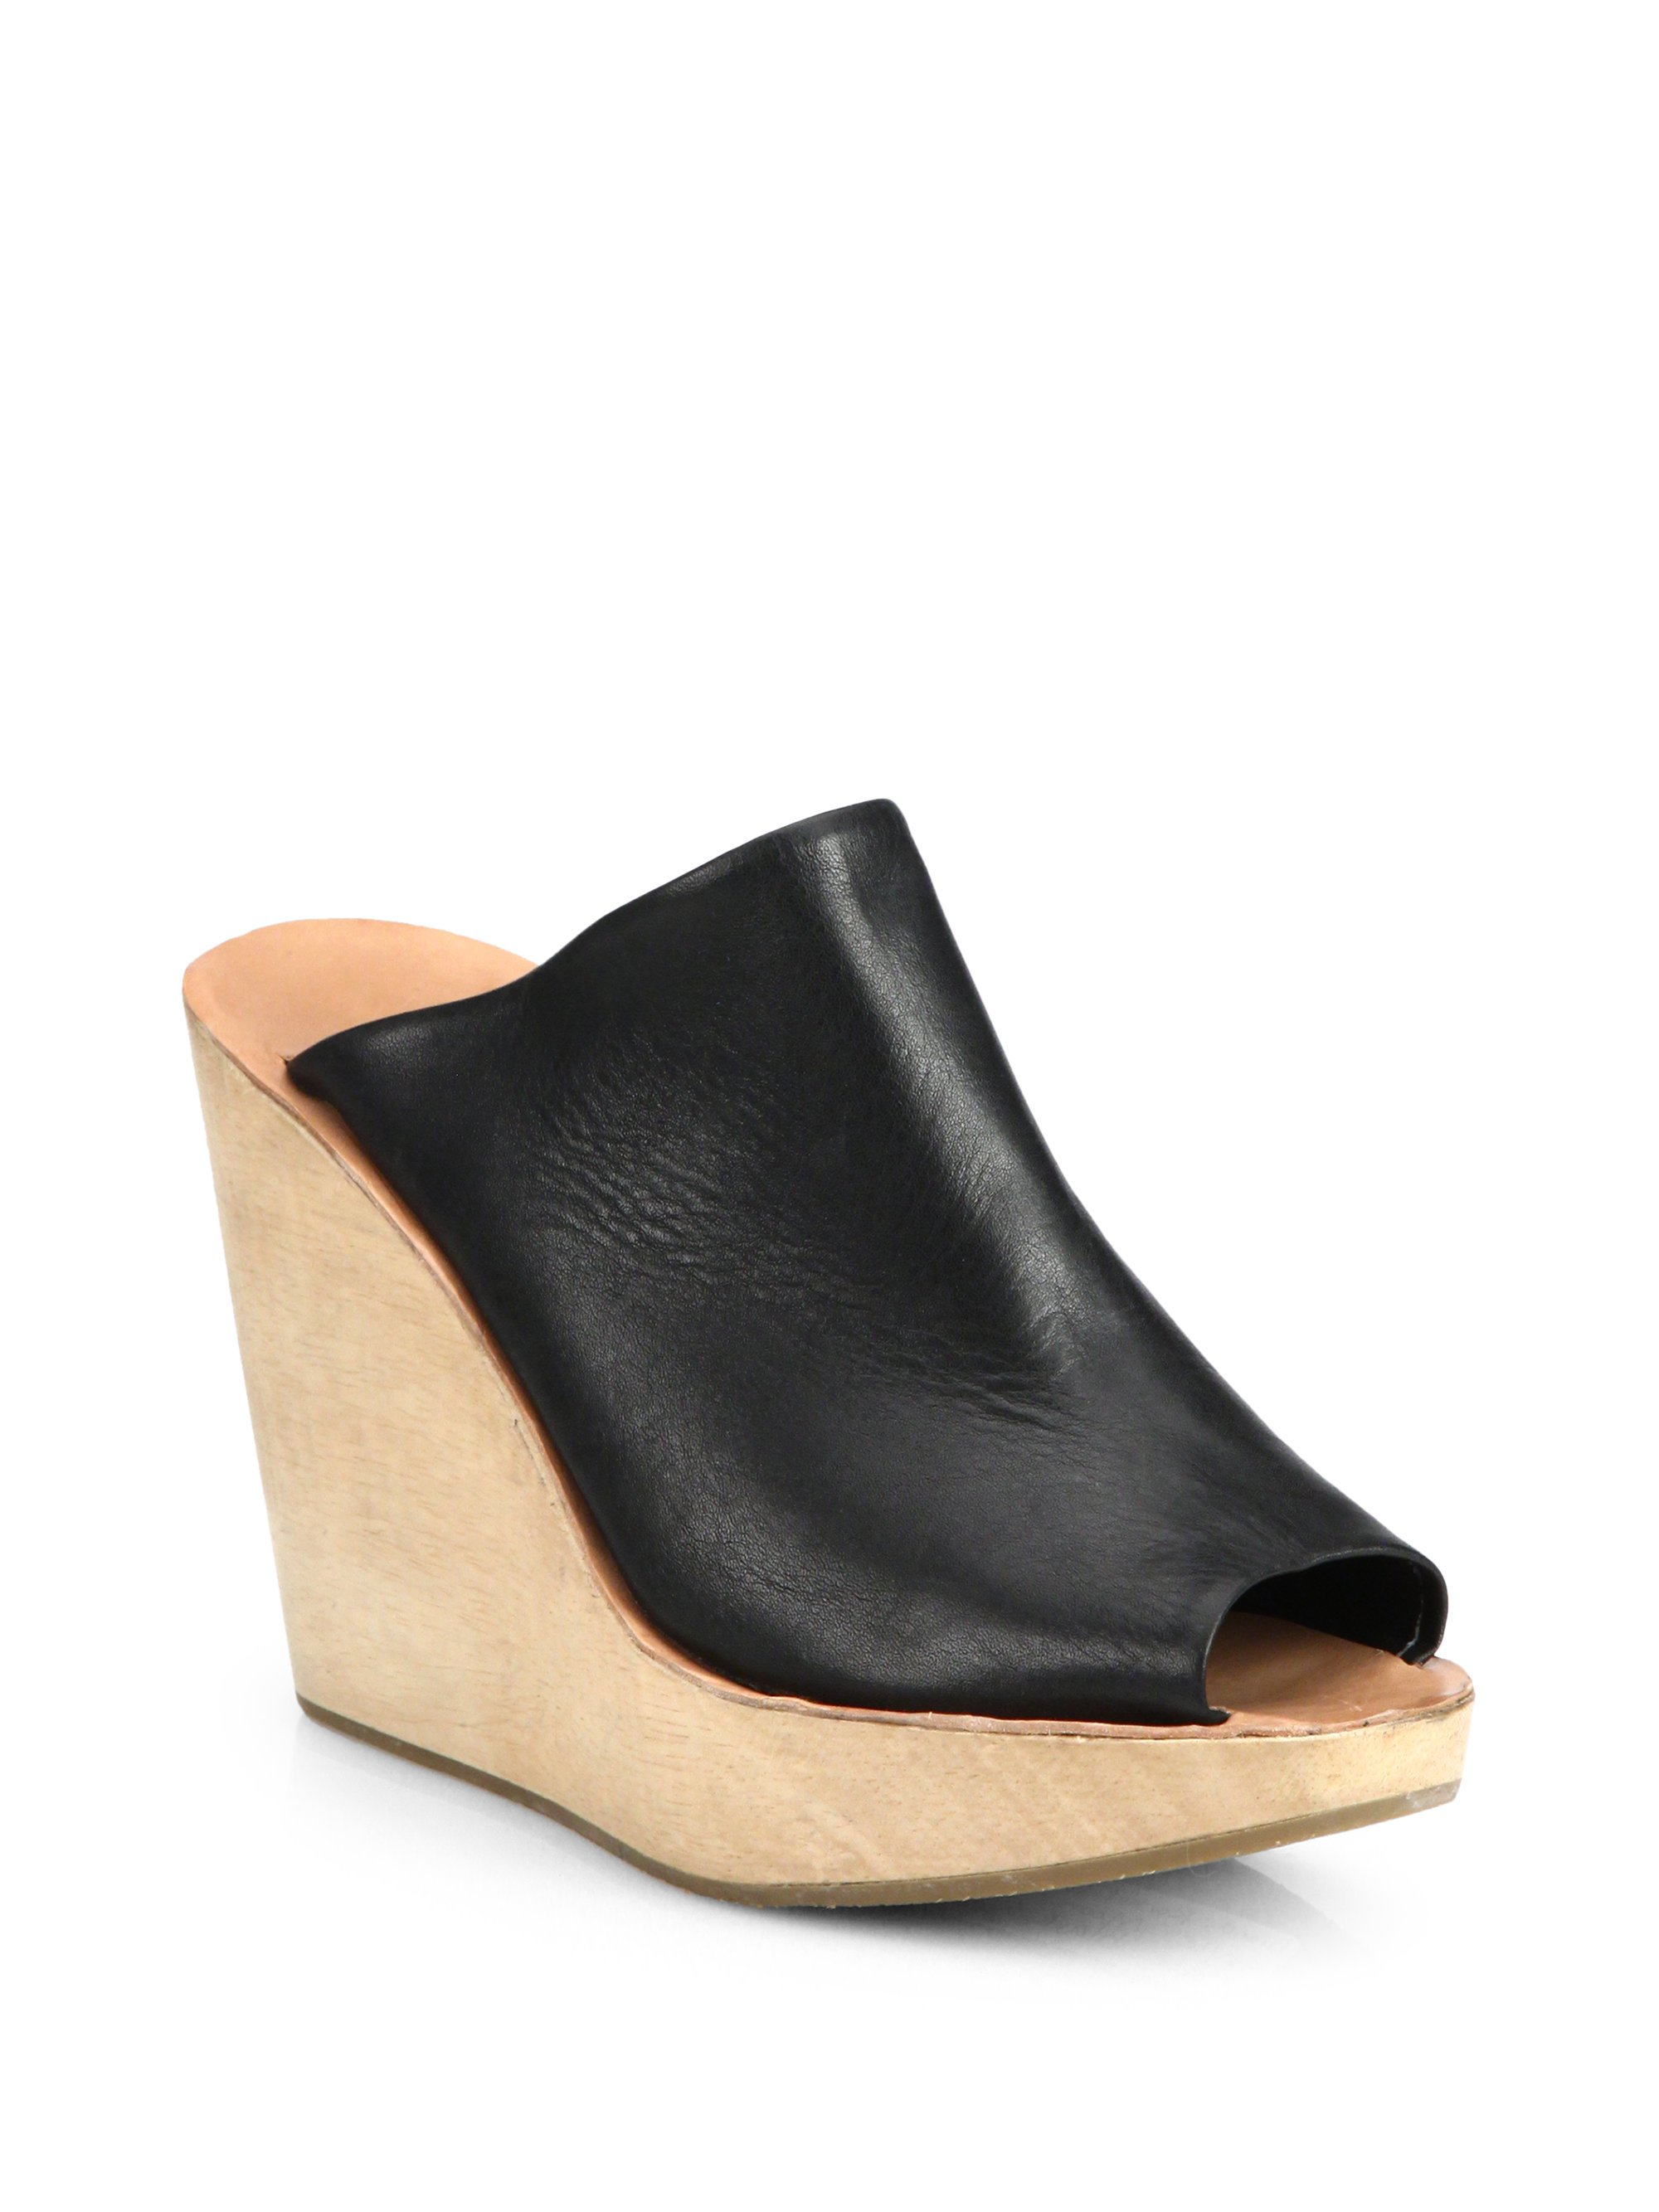 Rachel Comey Leather Platform Wedges cheap visit new buy cheap manchester great sale best wholesale for sale fAyHgrgM